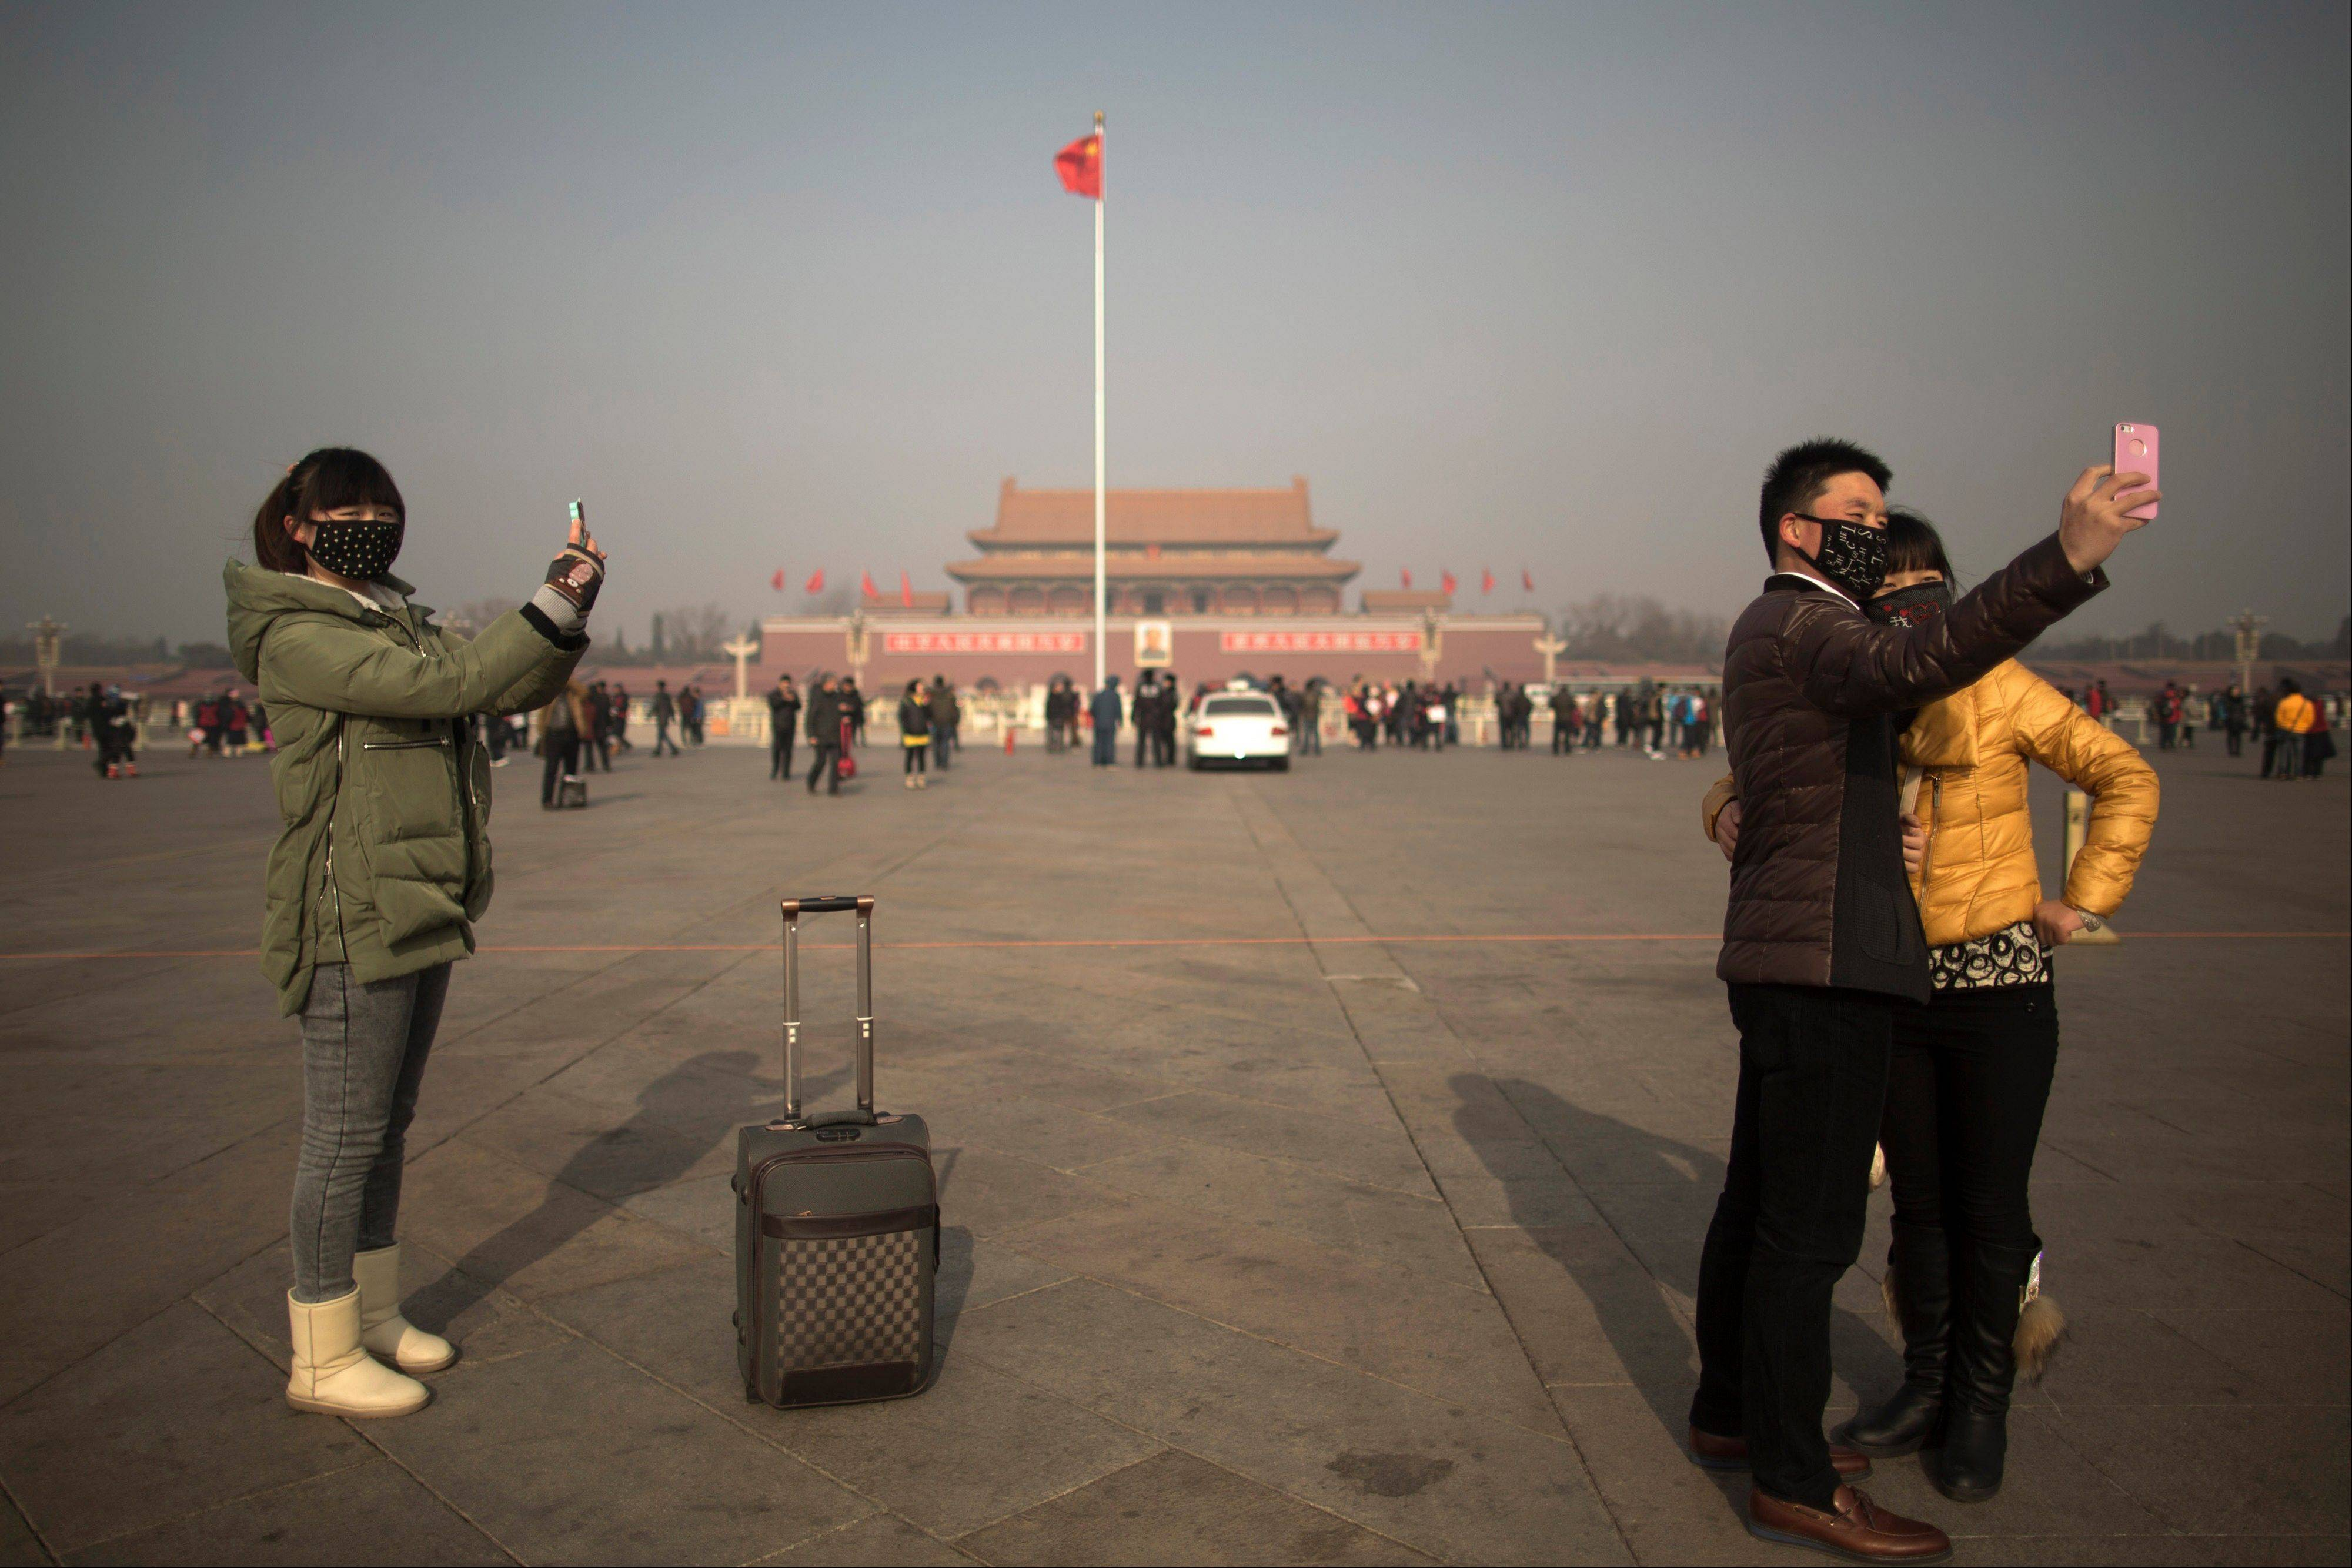 Tourists in masks use mobile phone cameras to snap shots of themselves during a heavily polluted day on Tiananmen Square in Beijing, China, Thursday. Beijing's skyscrapers receded into a dense gray smog Thursday as the capital saw the season's first wave of extremely dangerous pollution, with the concentration of toxic small particles registering more than two dozen times the level considered safe.